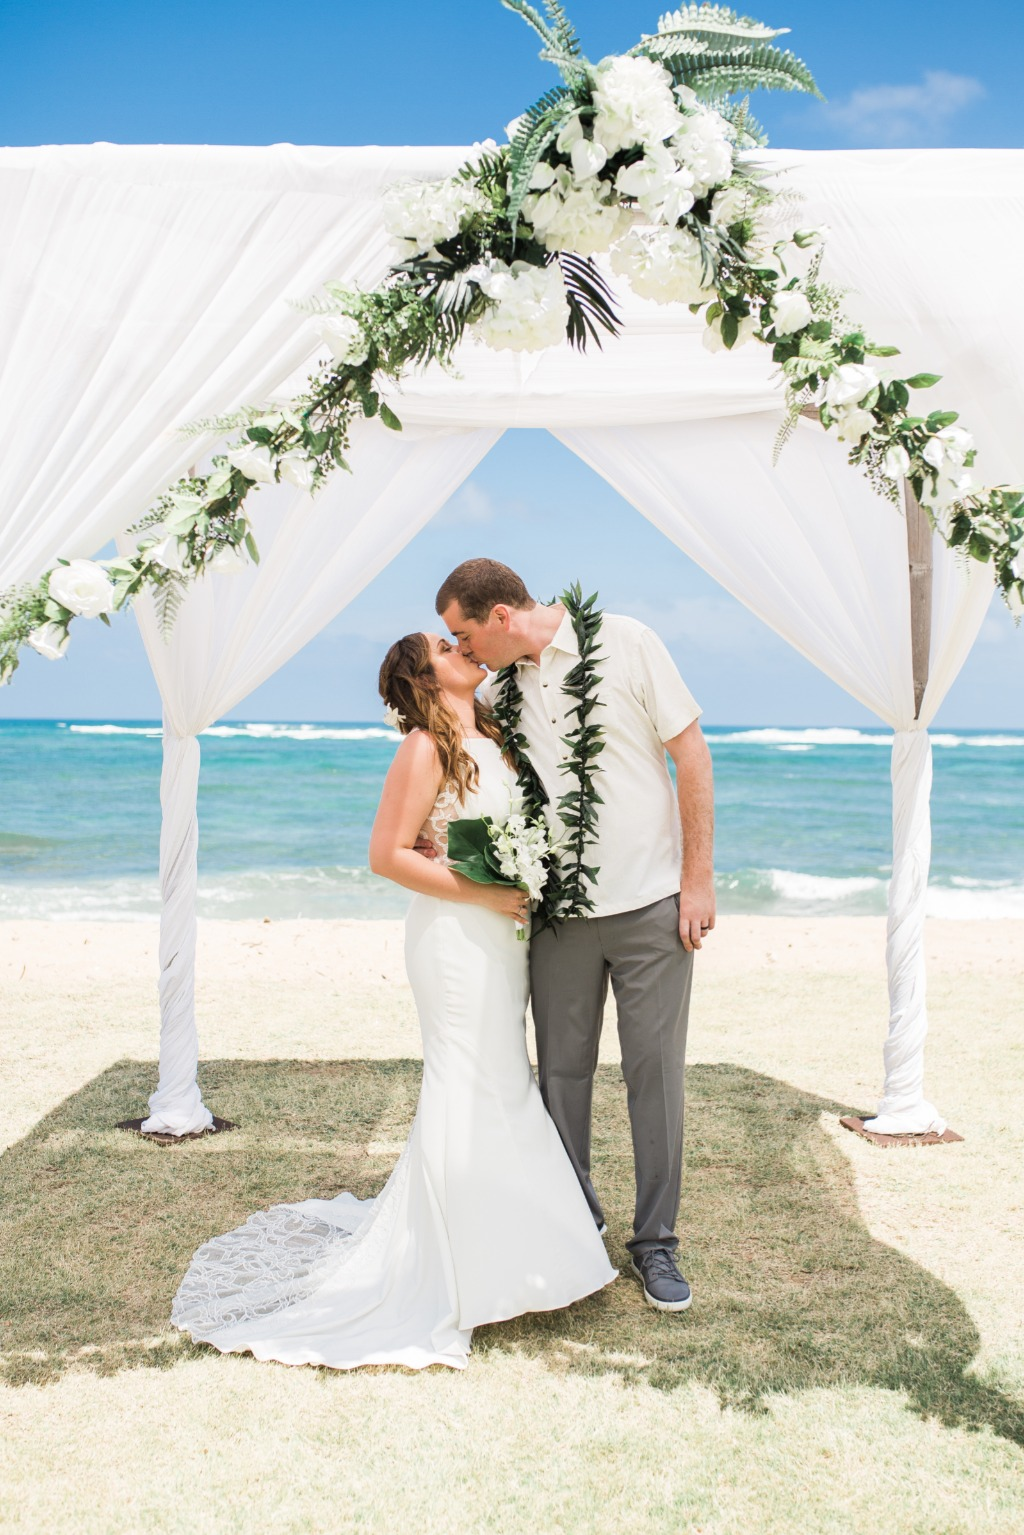 Kauai is always a good idea for an elopement!